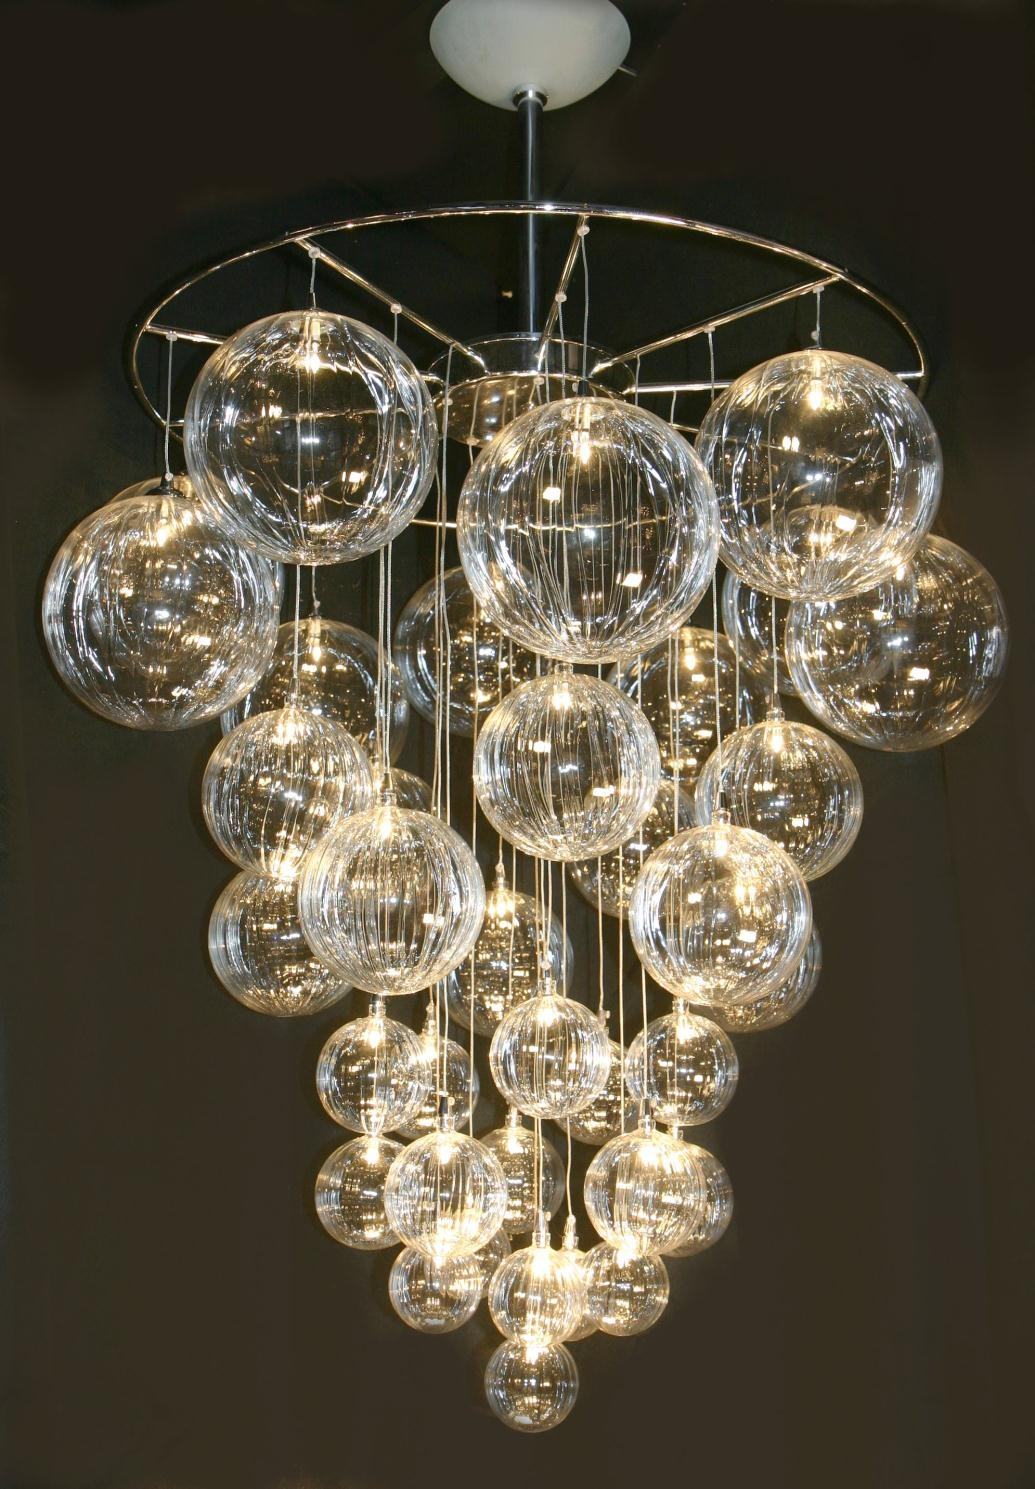 Modern Lights Chandeliers With Funky Chandeliers (Image 14 of 15)